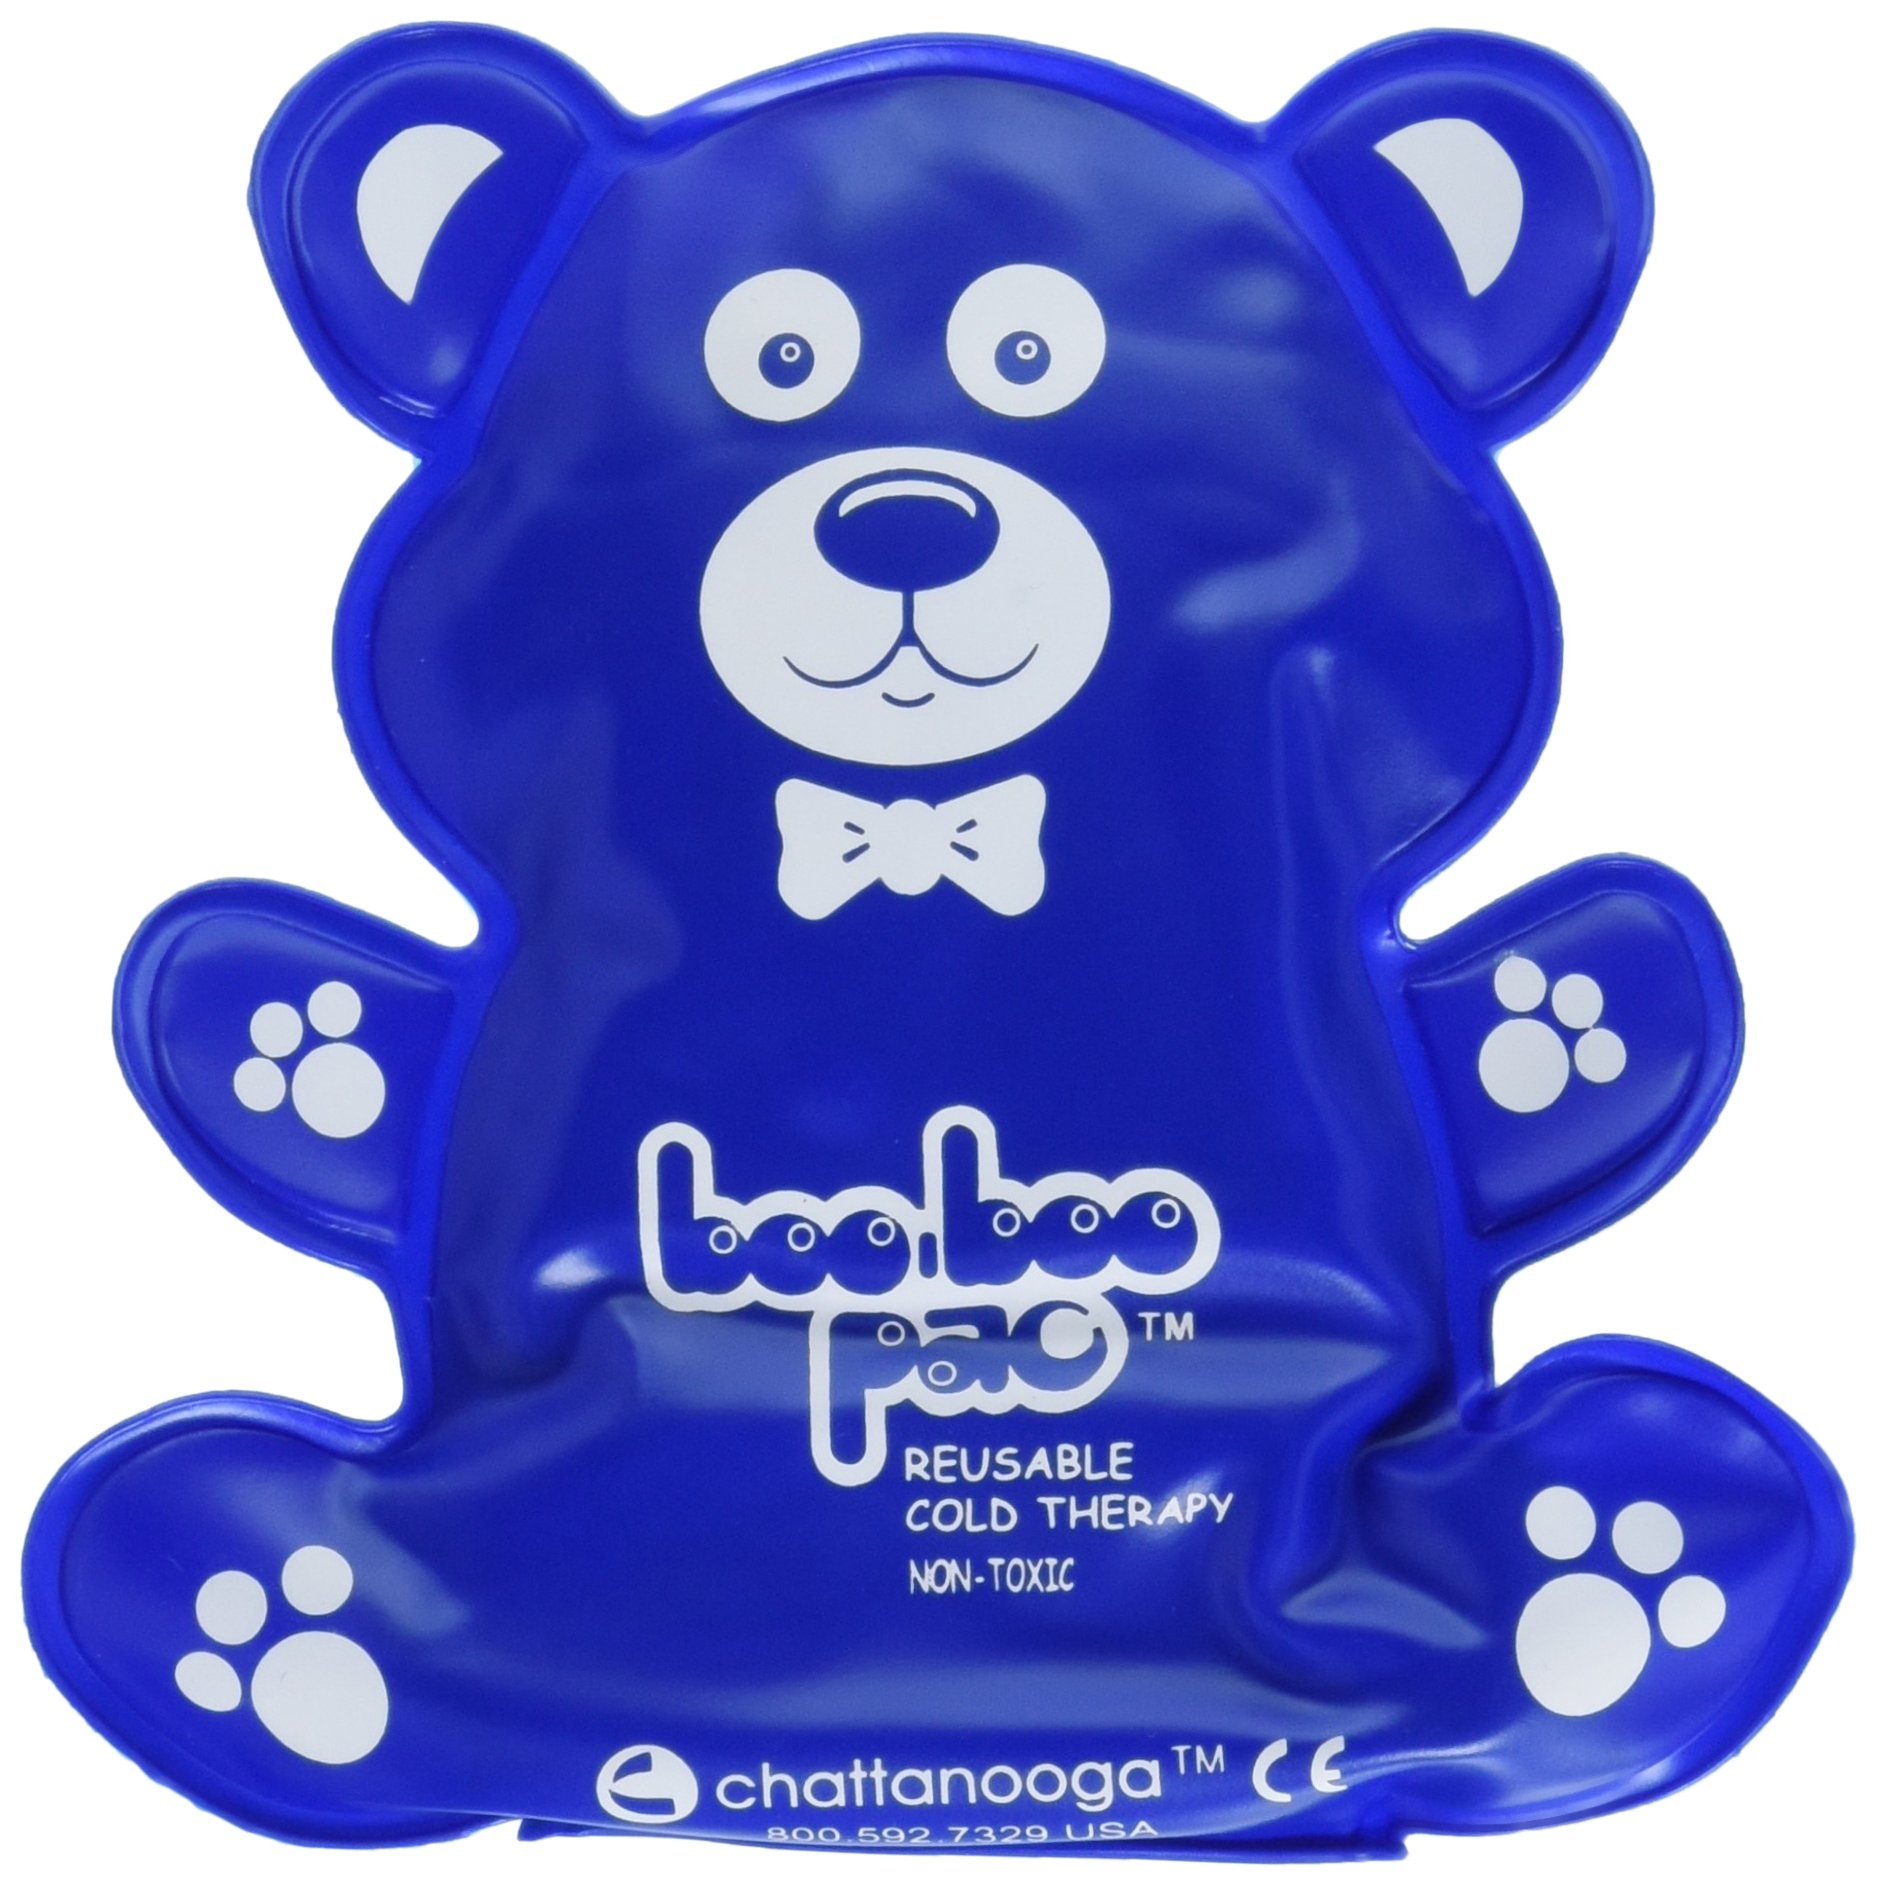 Chattanooga ColPac Cold Therapy, Blue Vinyl, Pediatric Boo Boo Cold Pack by Chattanooga